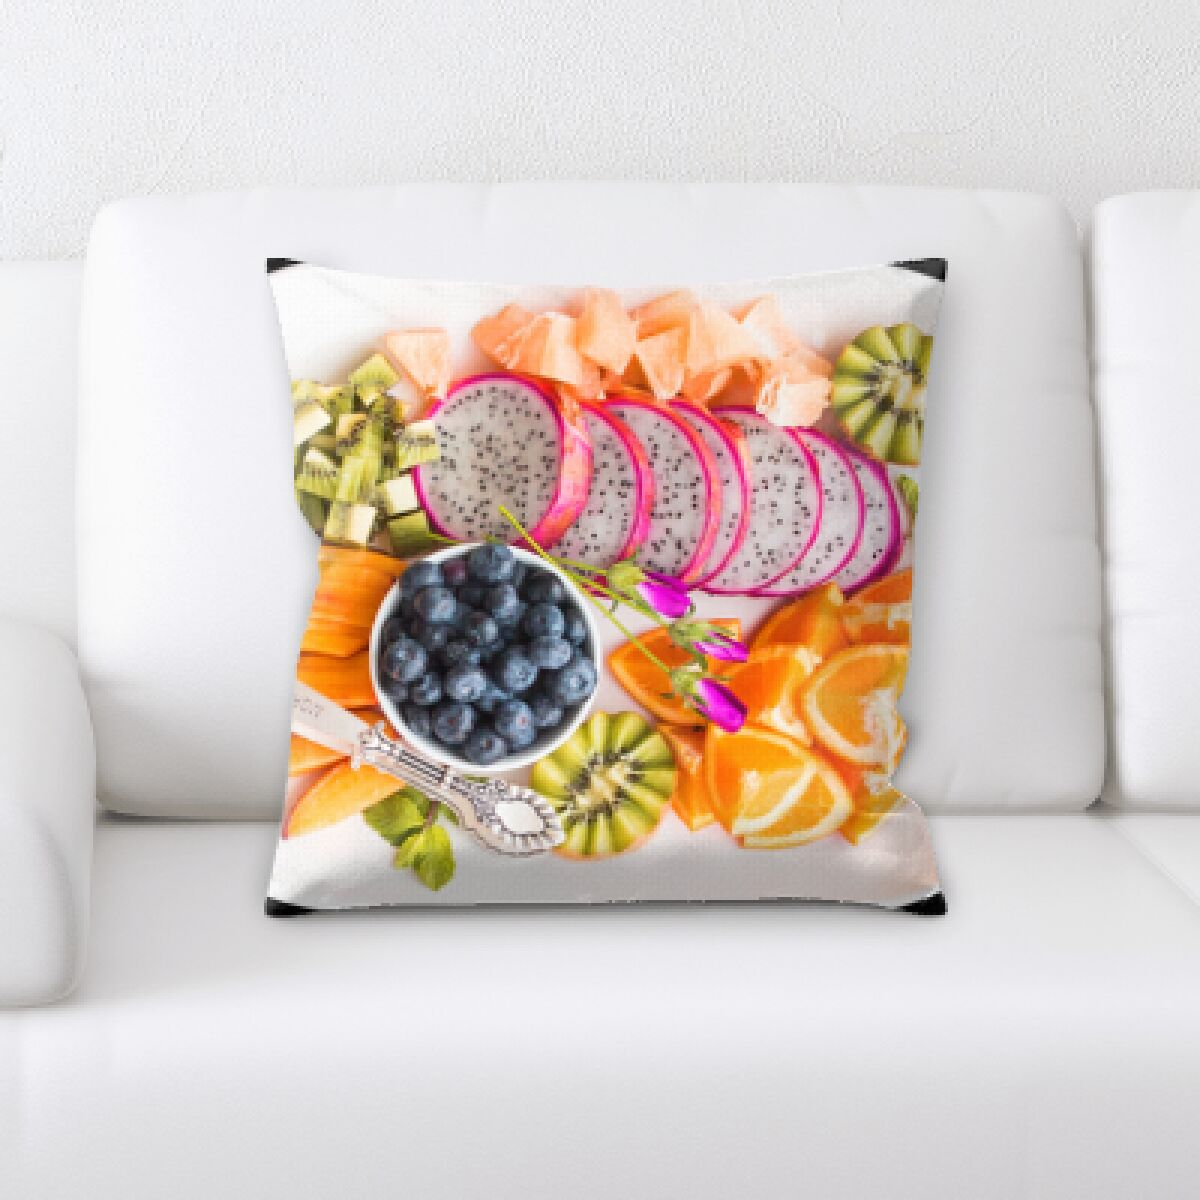 Bigler Mixed Fruits on a Plate Throw Pillow